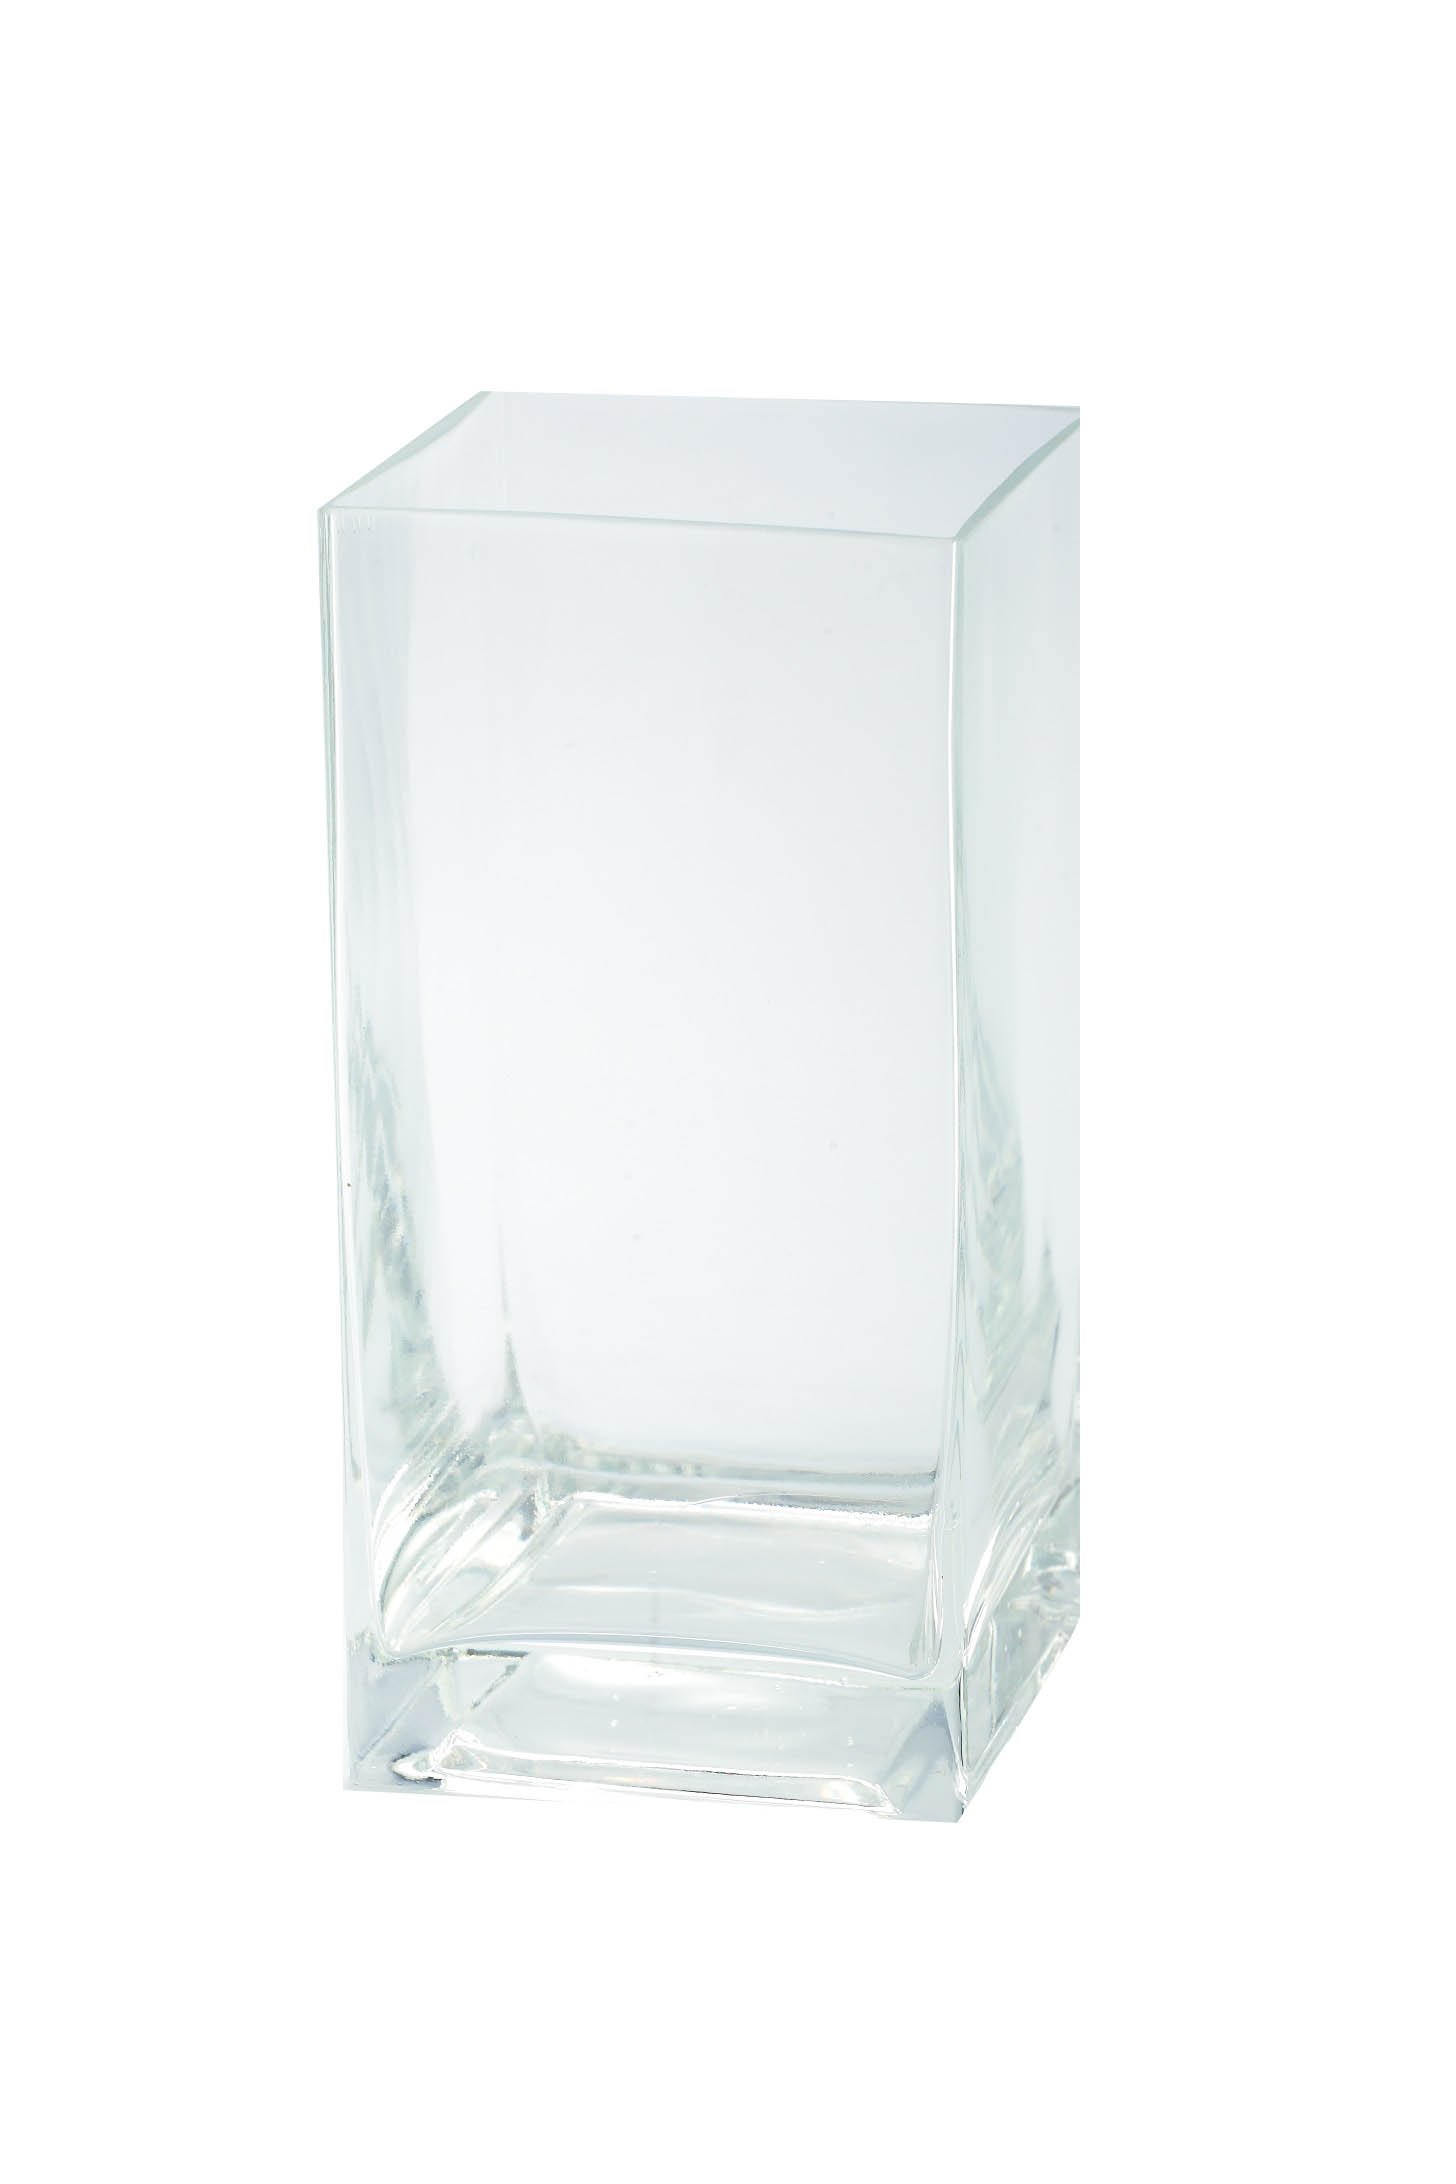 Diamond Star Glass Clear Square Container, 4'' by 4'' by 8''